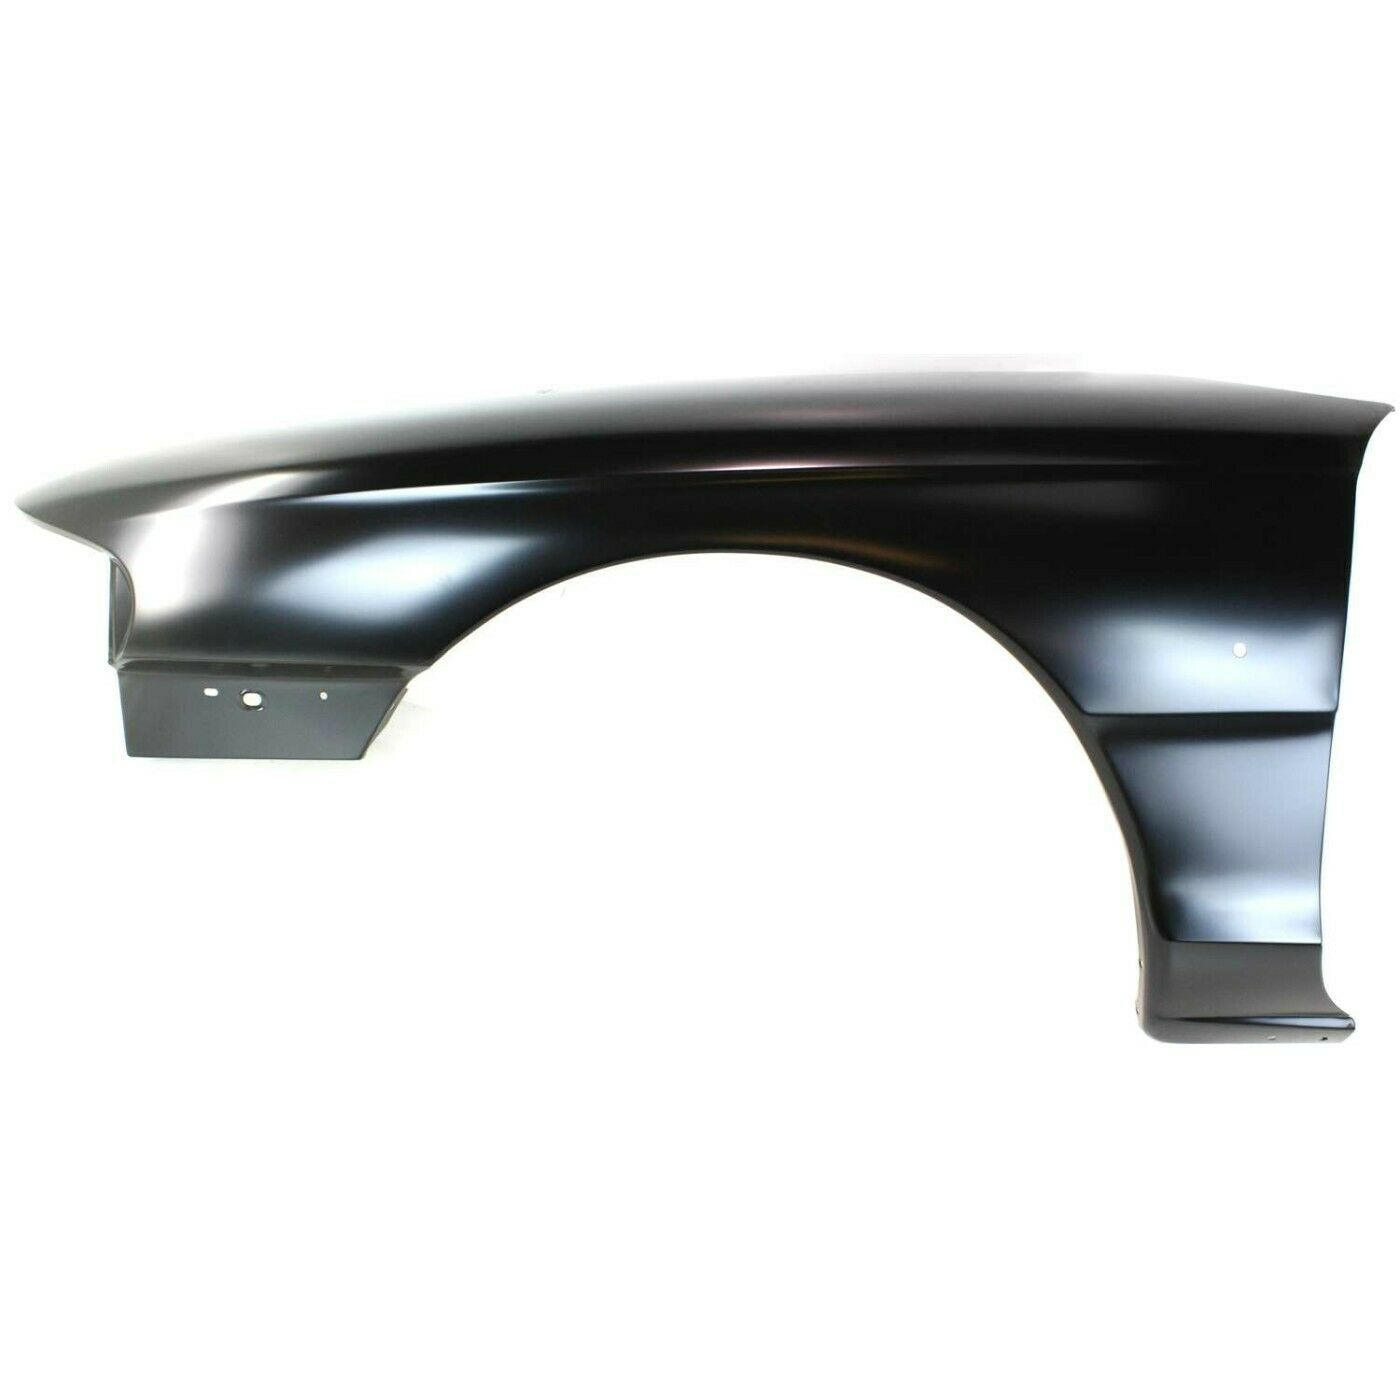 1994-1998 Ford Mustang Fender